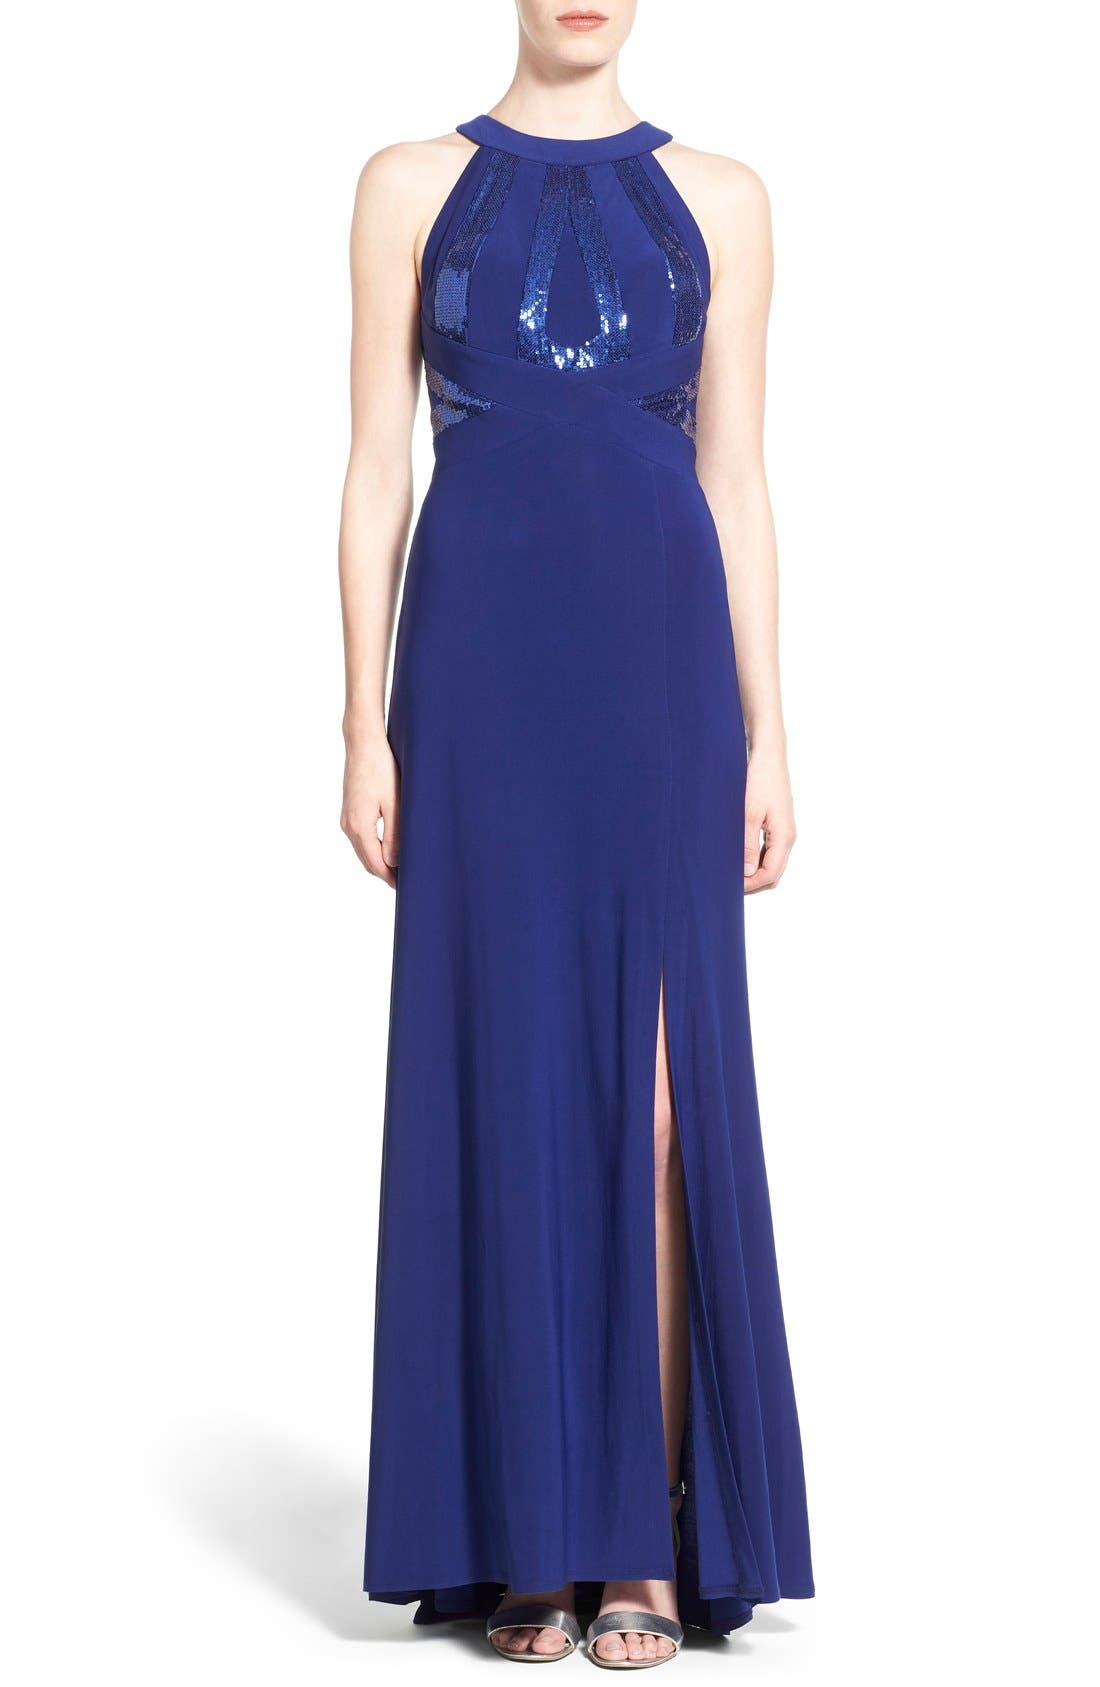 Alternate Image 1 Selected - Morgan & Co. Sequin Halter Gown